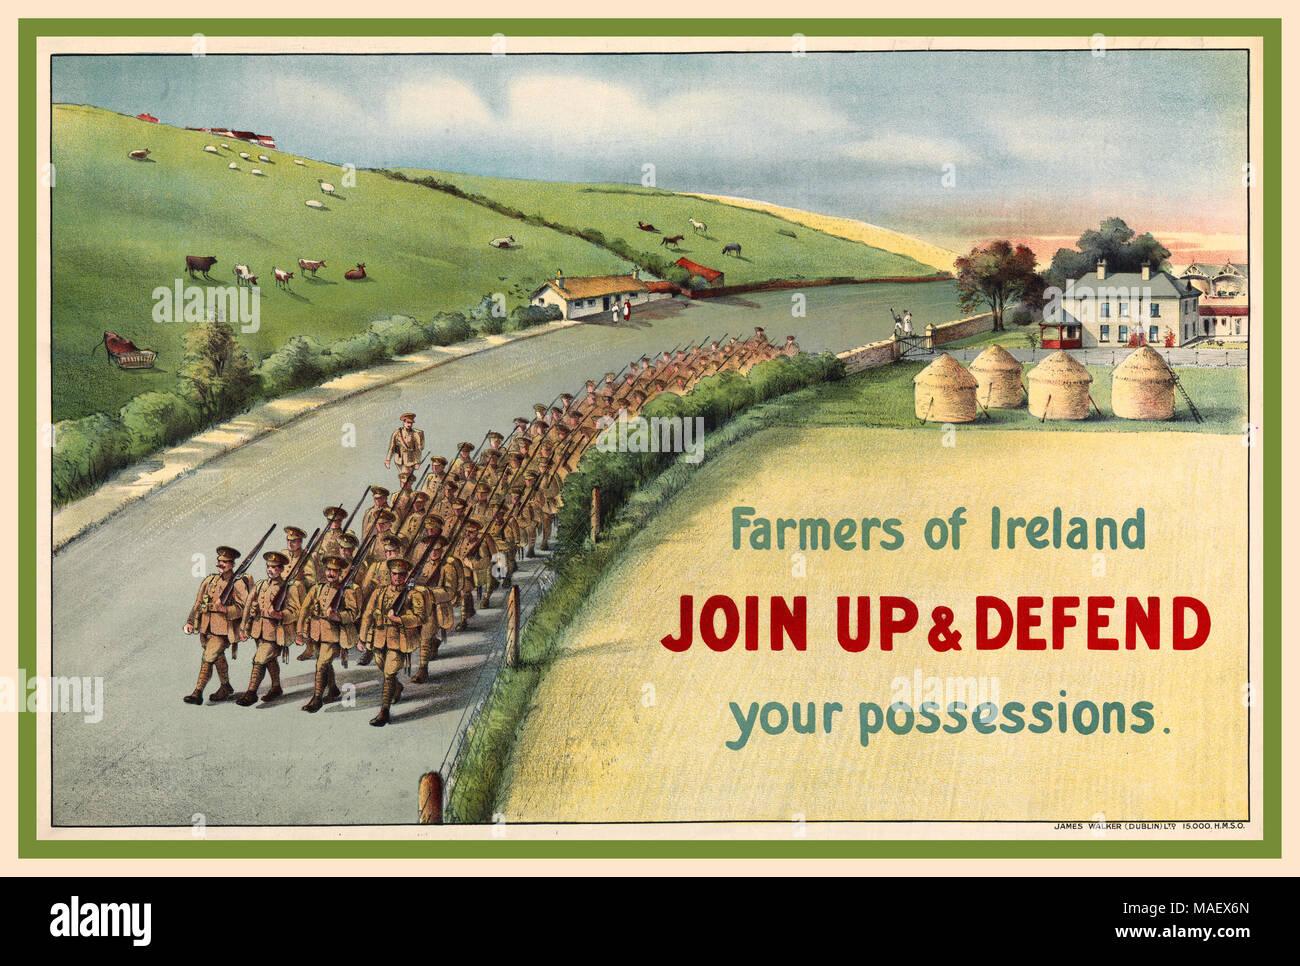 1914 Vintage WW1 Recruitment Propaganda Poster with column of Irish soldiers marching along a country road in Ireland, passing haystacks, houses and animals grazing in fields. Farmers of Ireland JOIN UP AND DEFEND your possessions. 140000 Irish men joined the British army in Ireland to fight in the First World War. - Stock Image